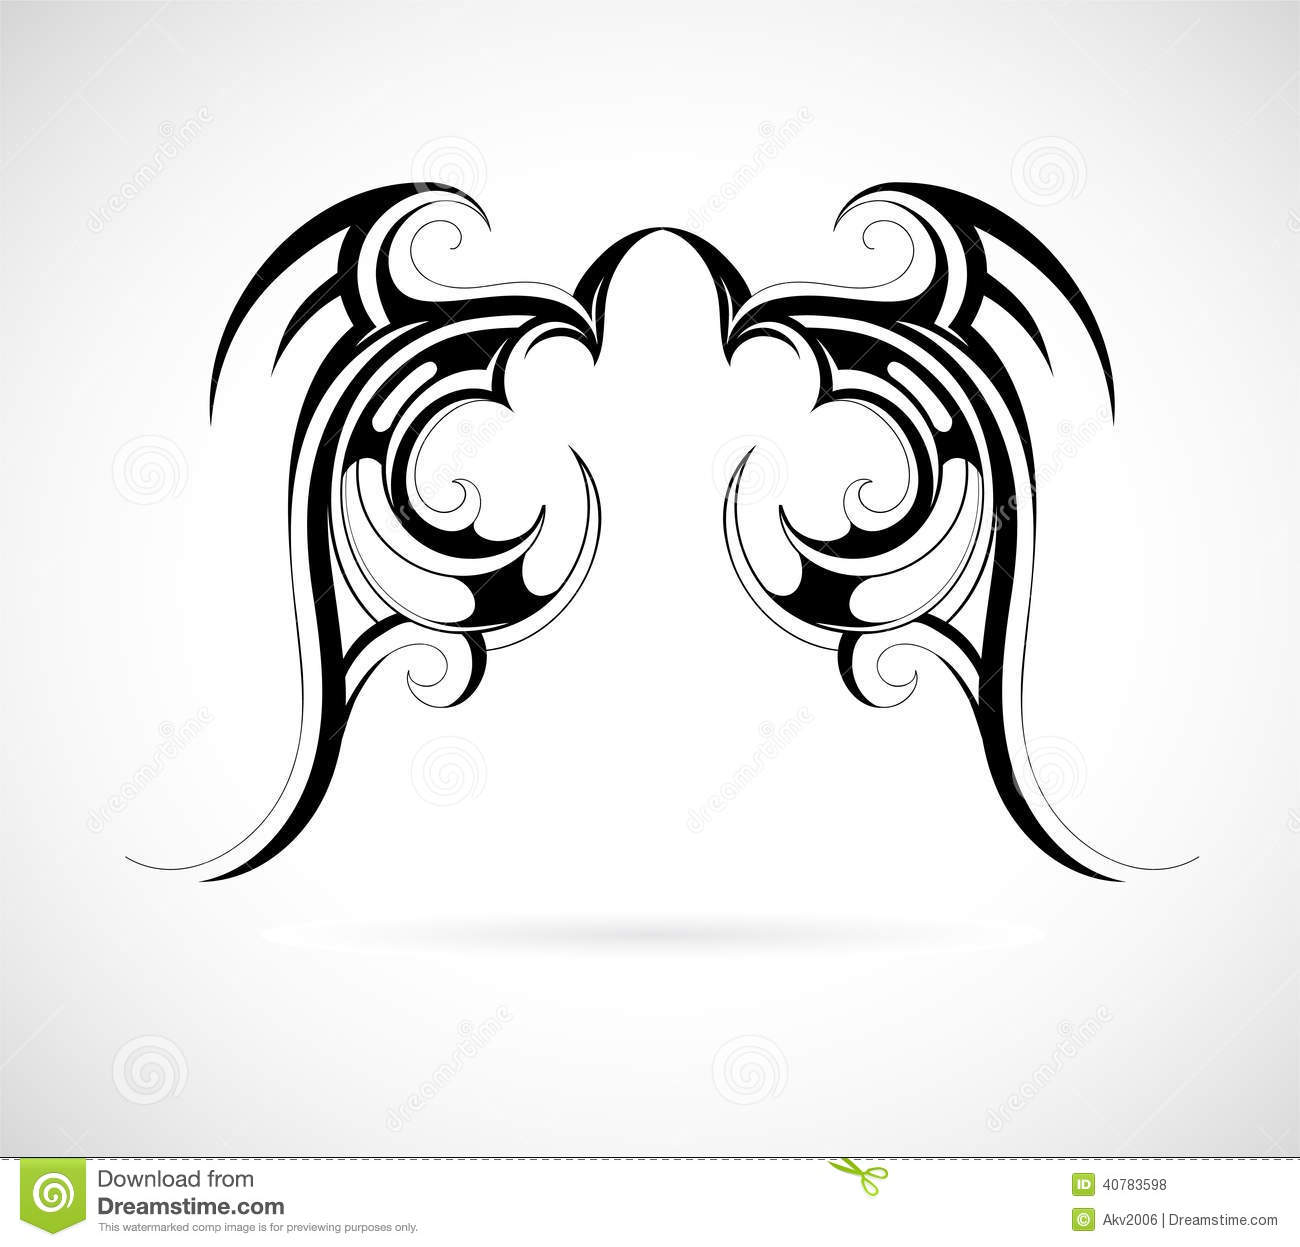 Tribal Art Wings Stock Vector - Image: 40783598